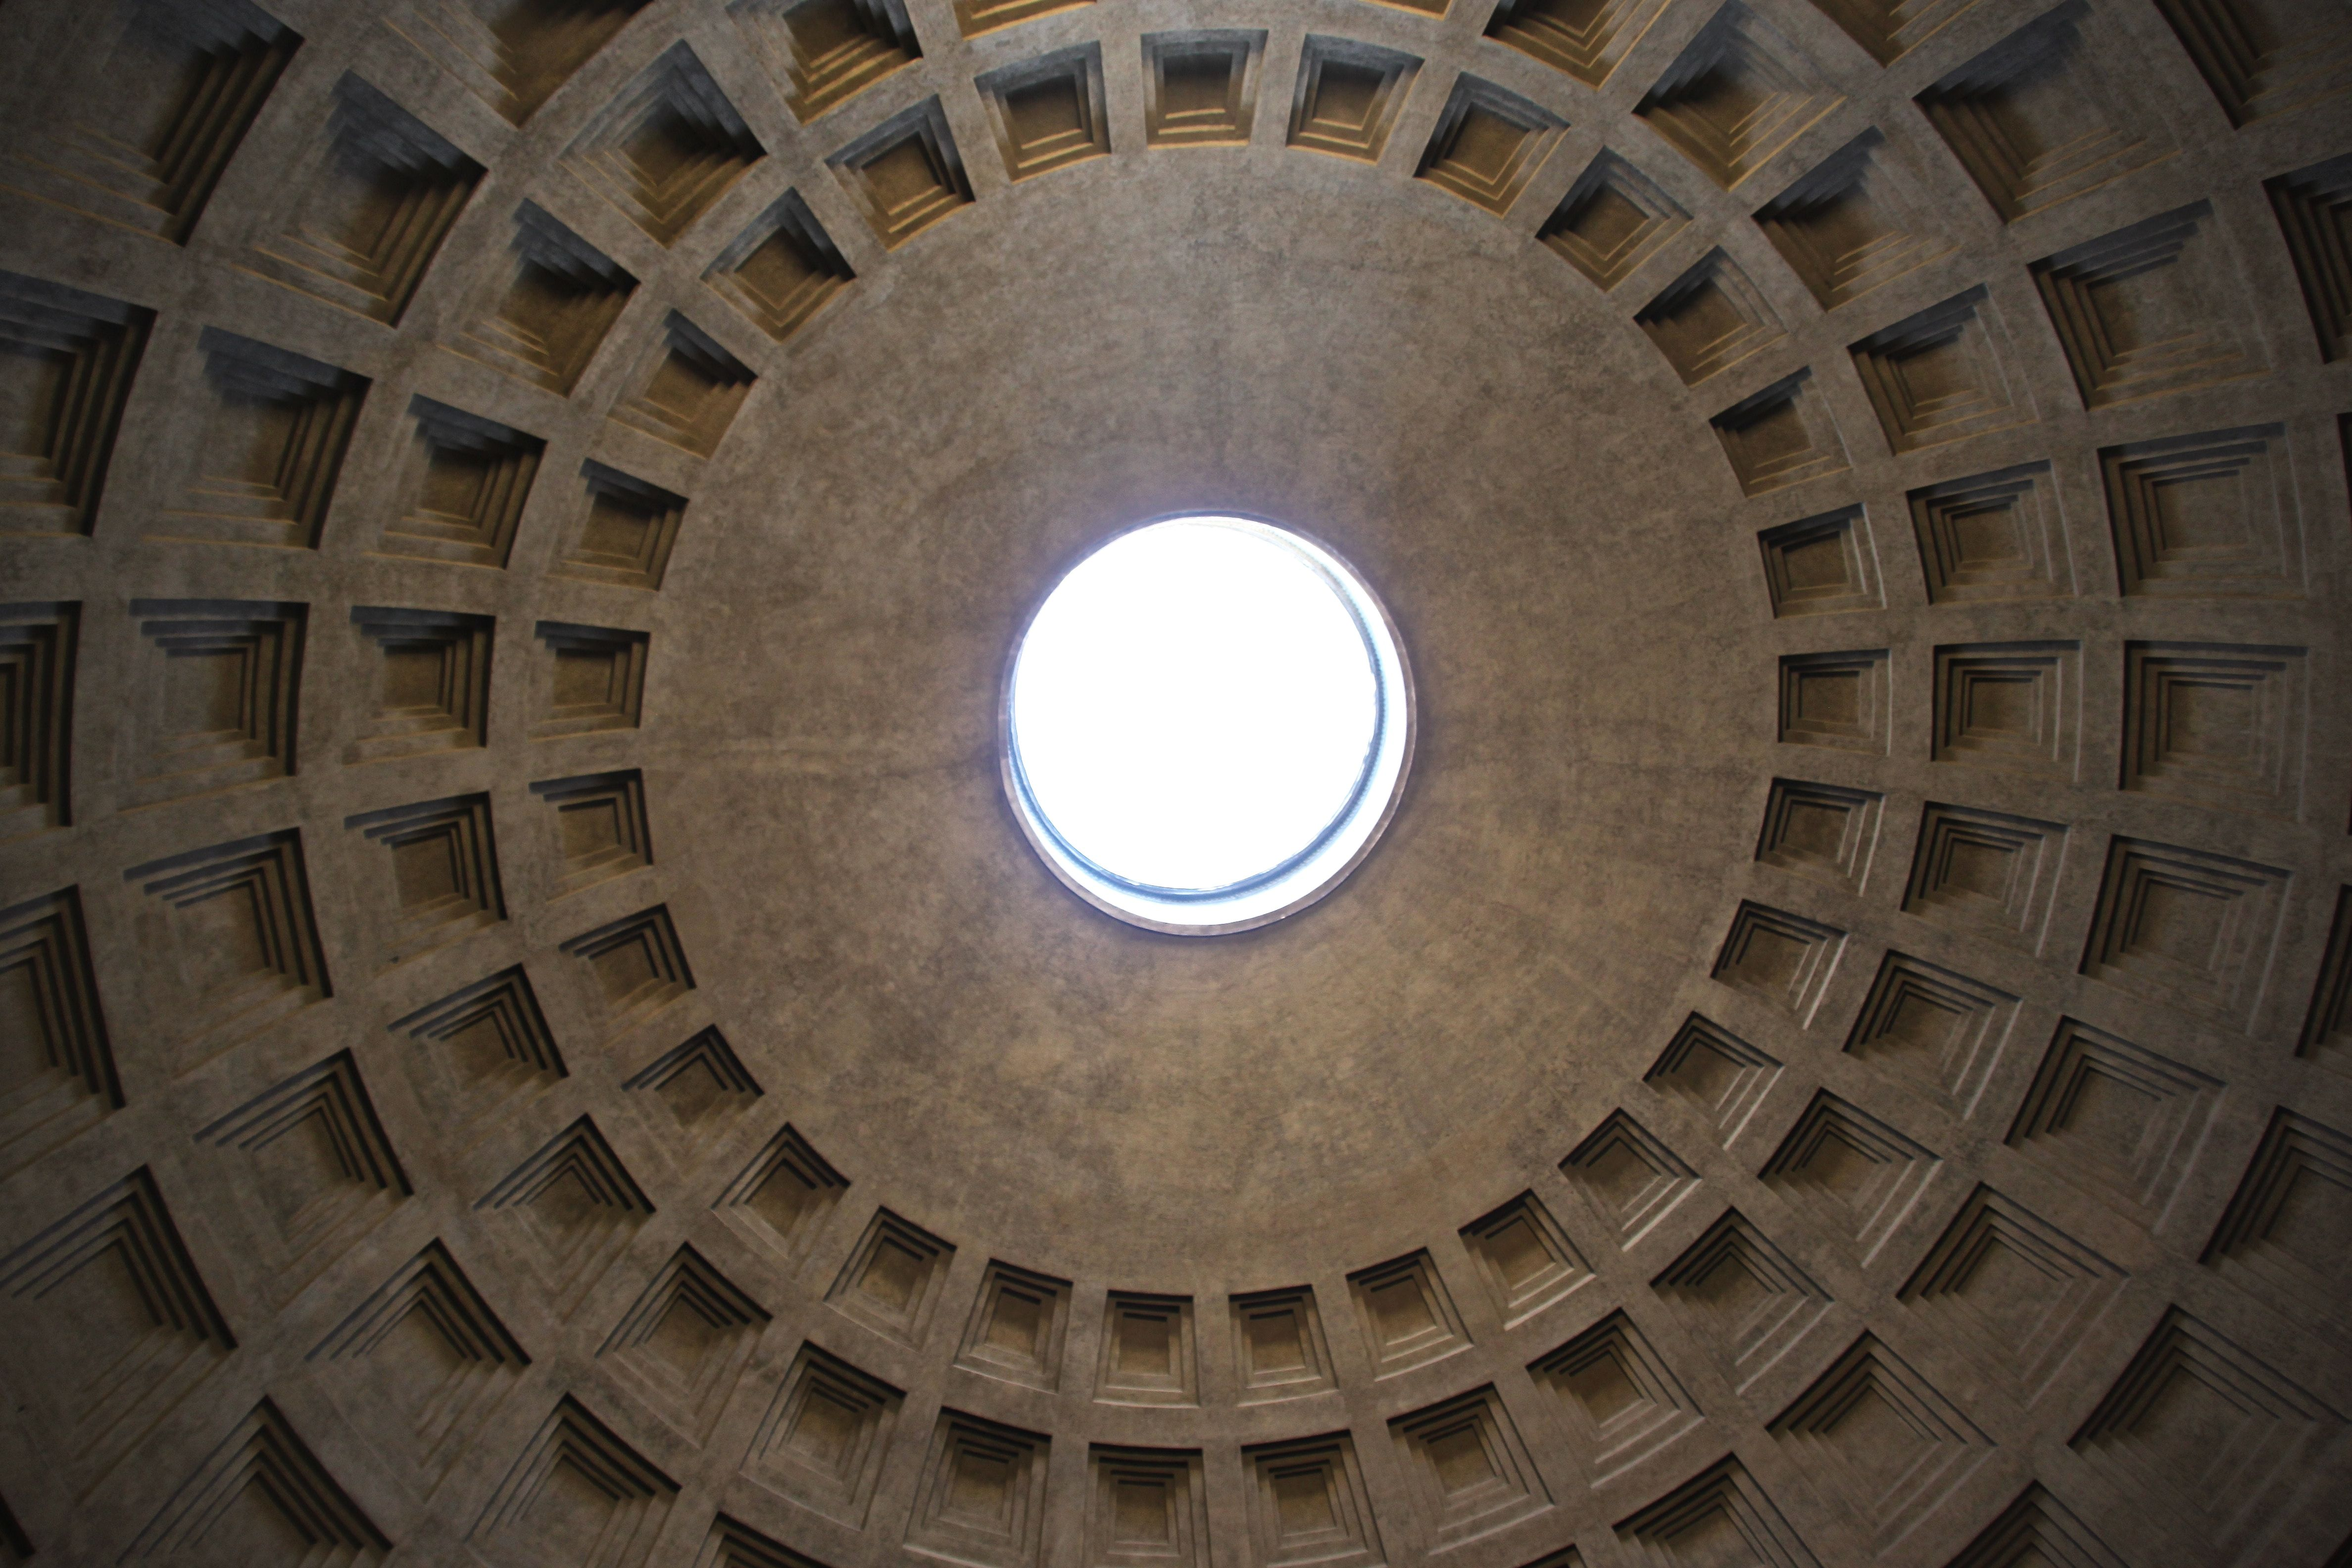 The inside of the 2000 year old concrete dome of the Pantheon, Rome